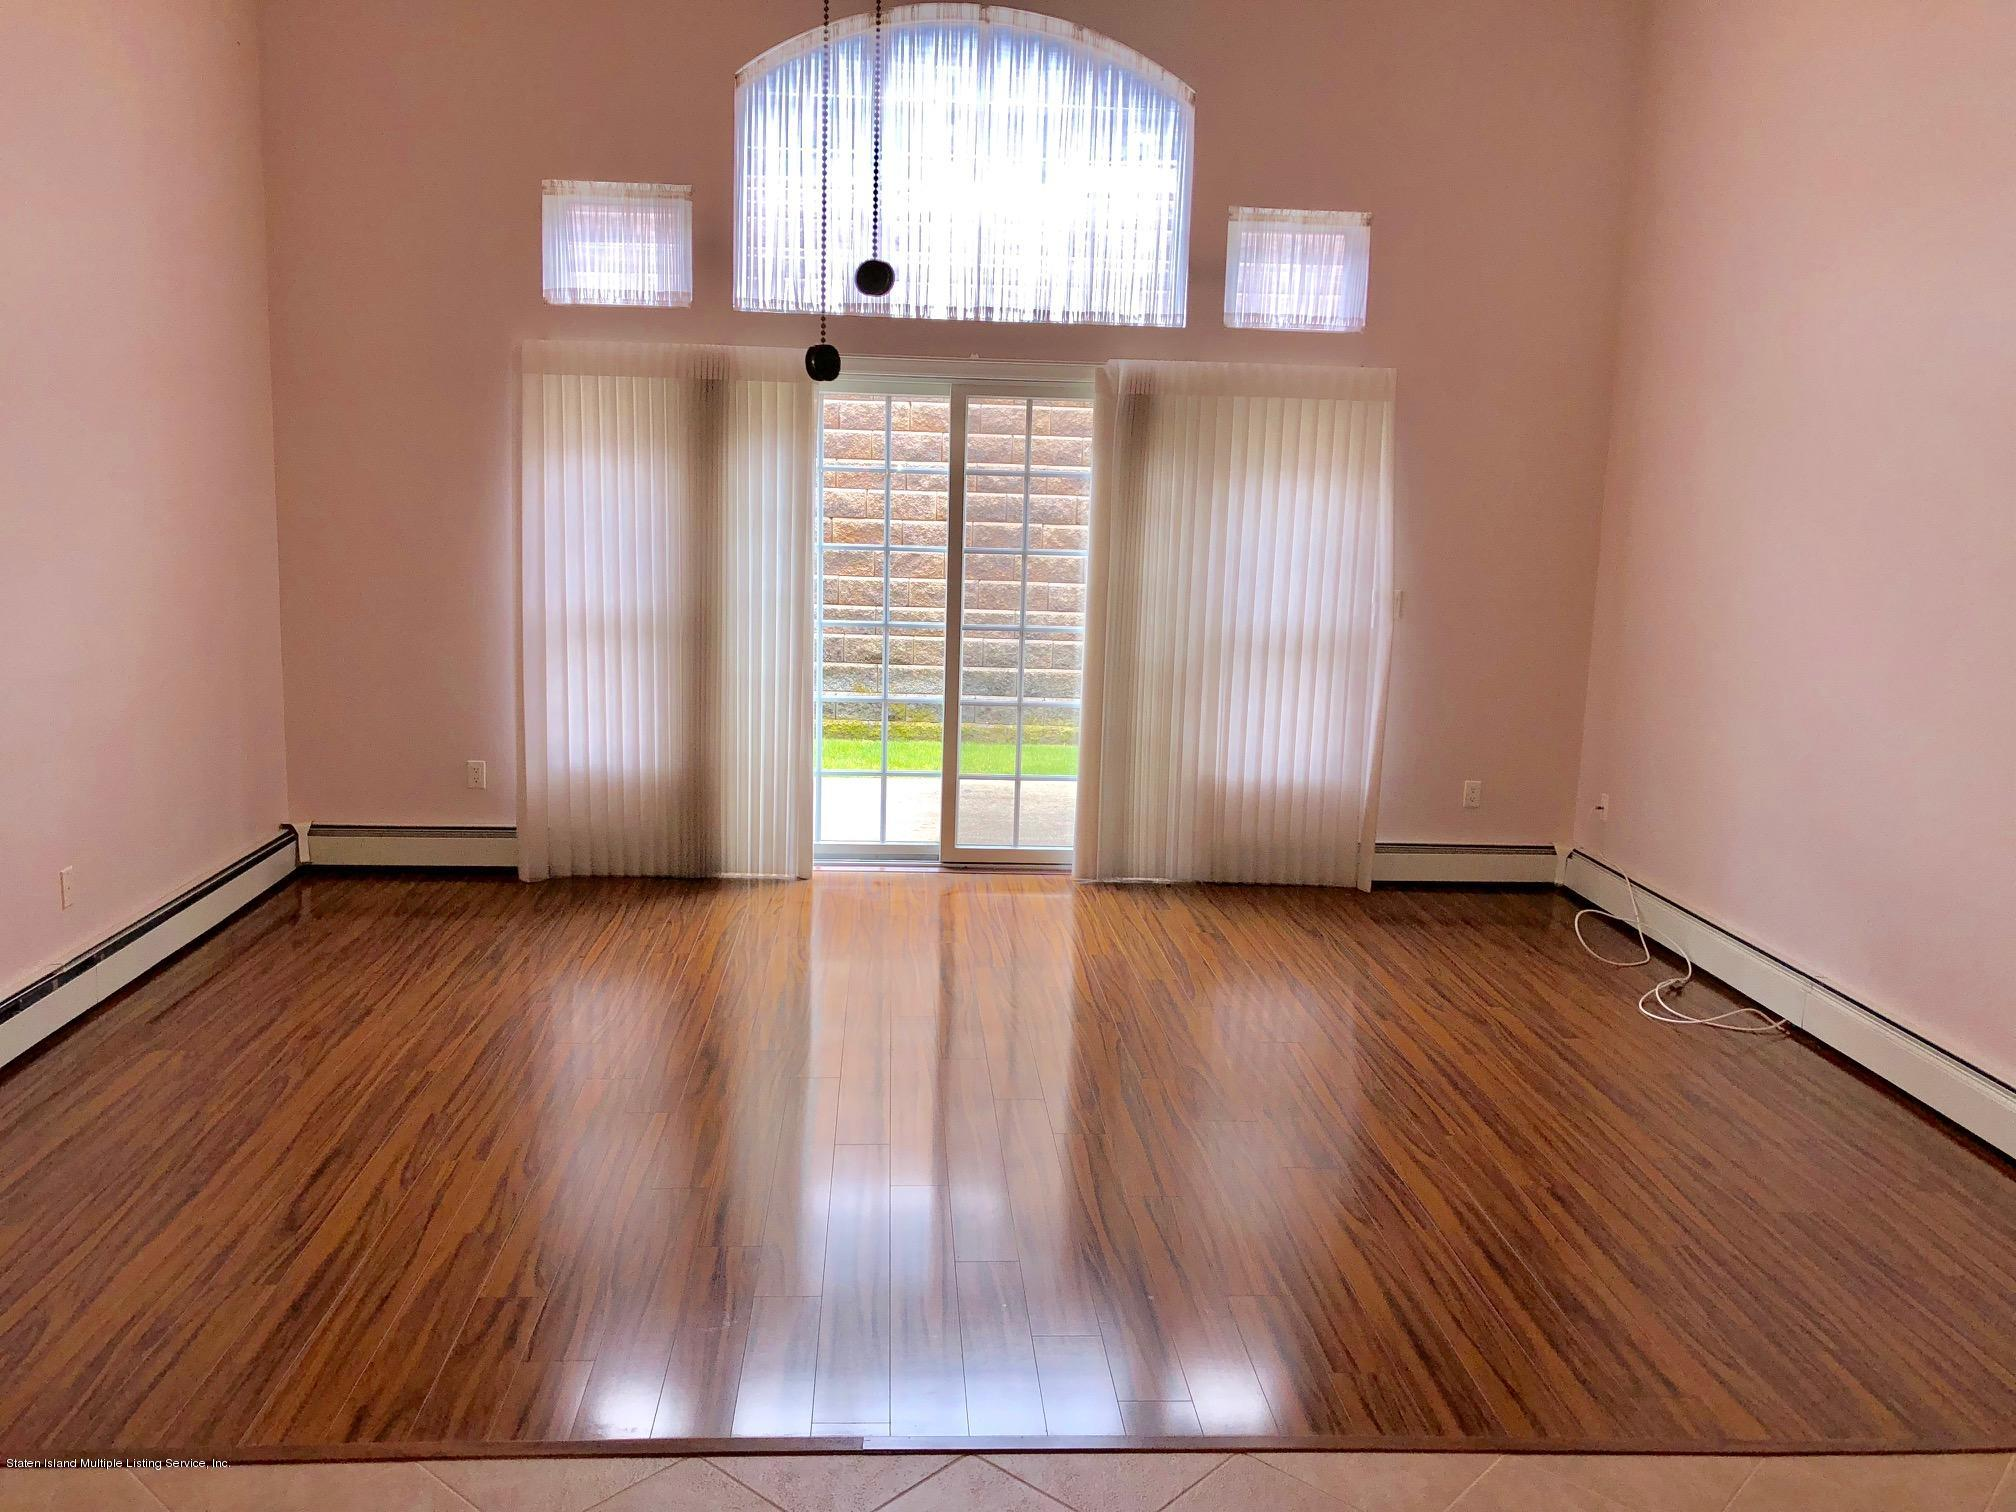 Single Family - Attached 61 Topside Lane  Staten Island, NY 10309, MLS-1129867-6